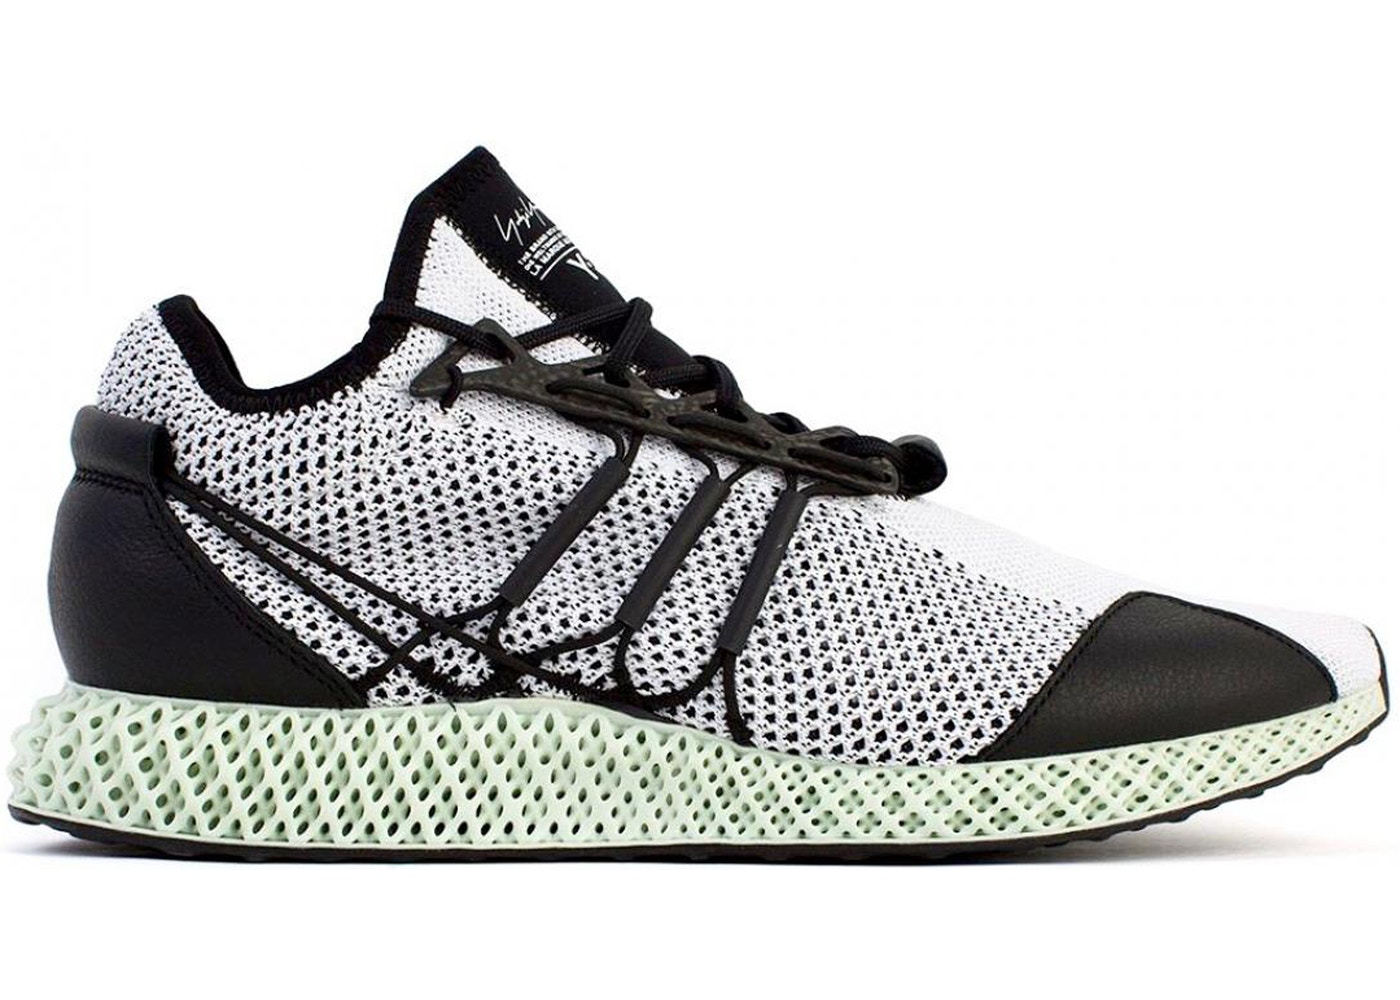 368610300e60c adidas Y-3 Runner 4D Black White